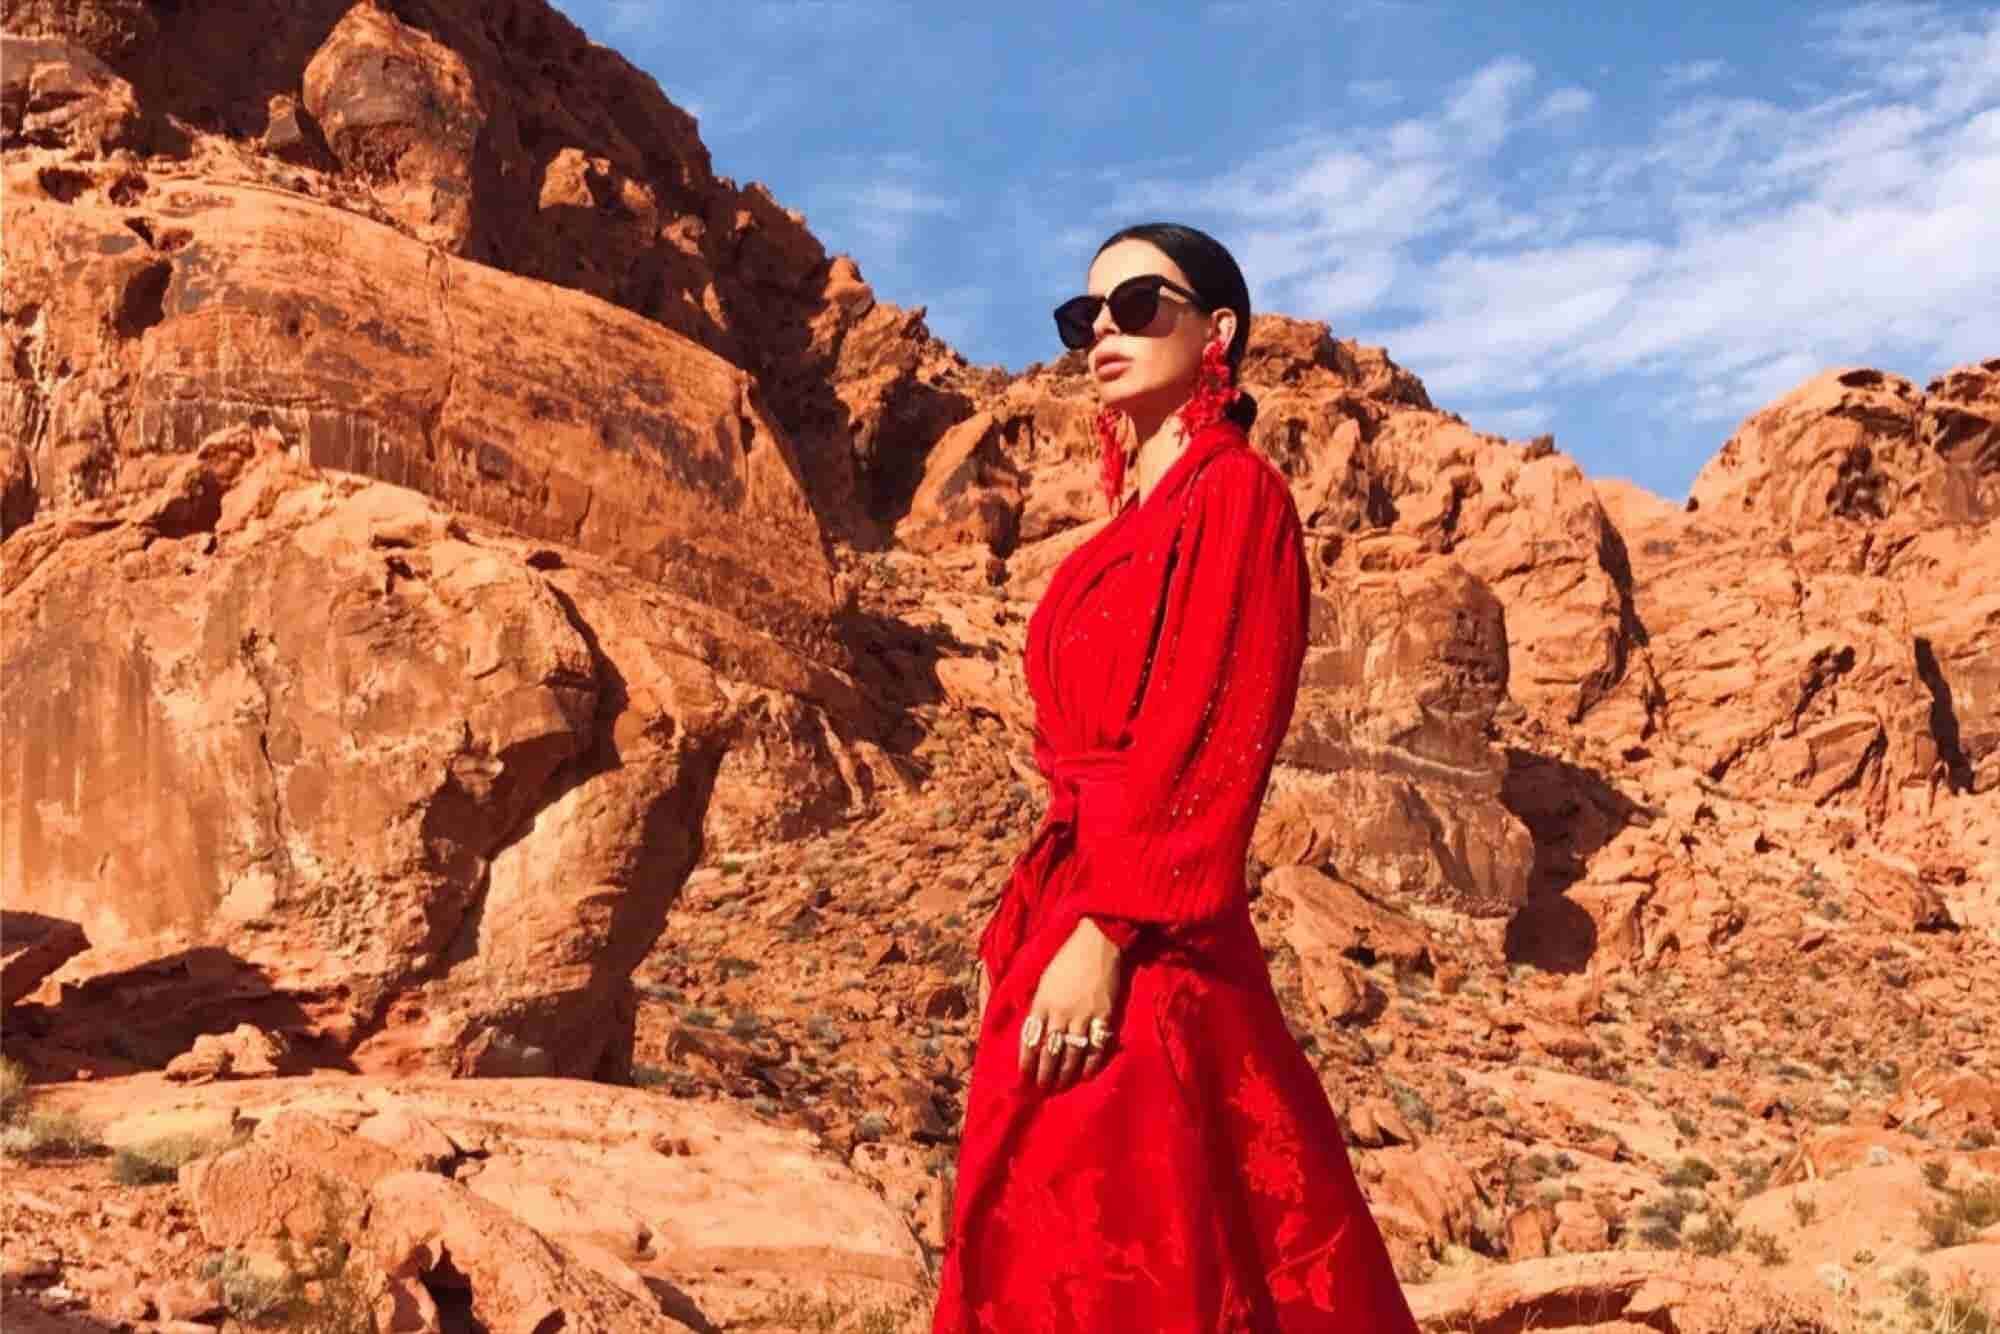 This Mysterious Entrepreneur Uses Instagram to Show Off Art and Her Travels and Now Has Half a Million Followers